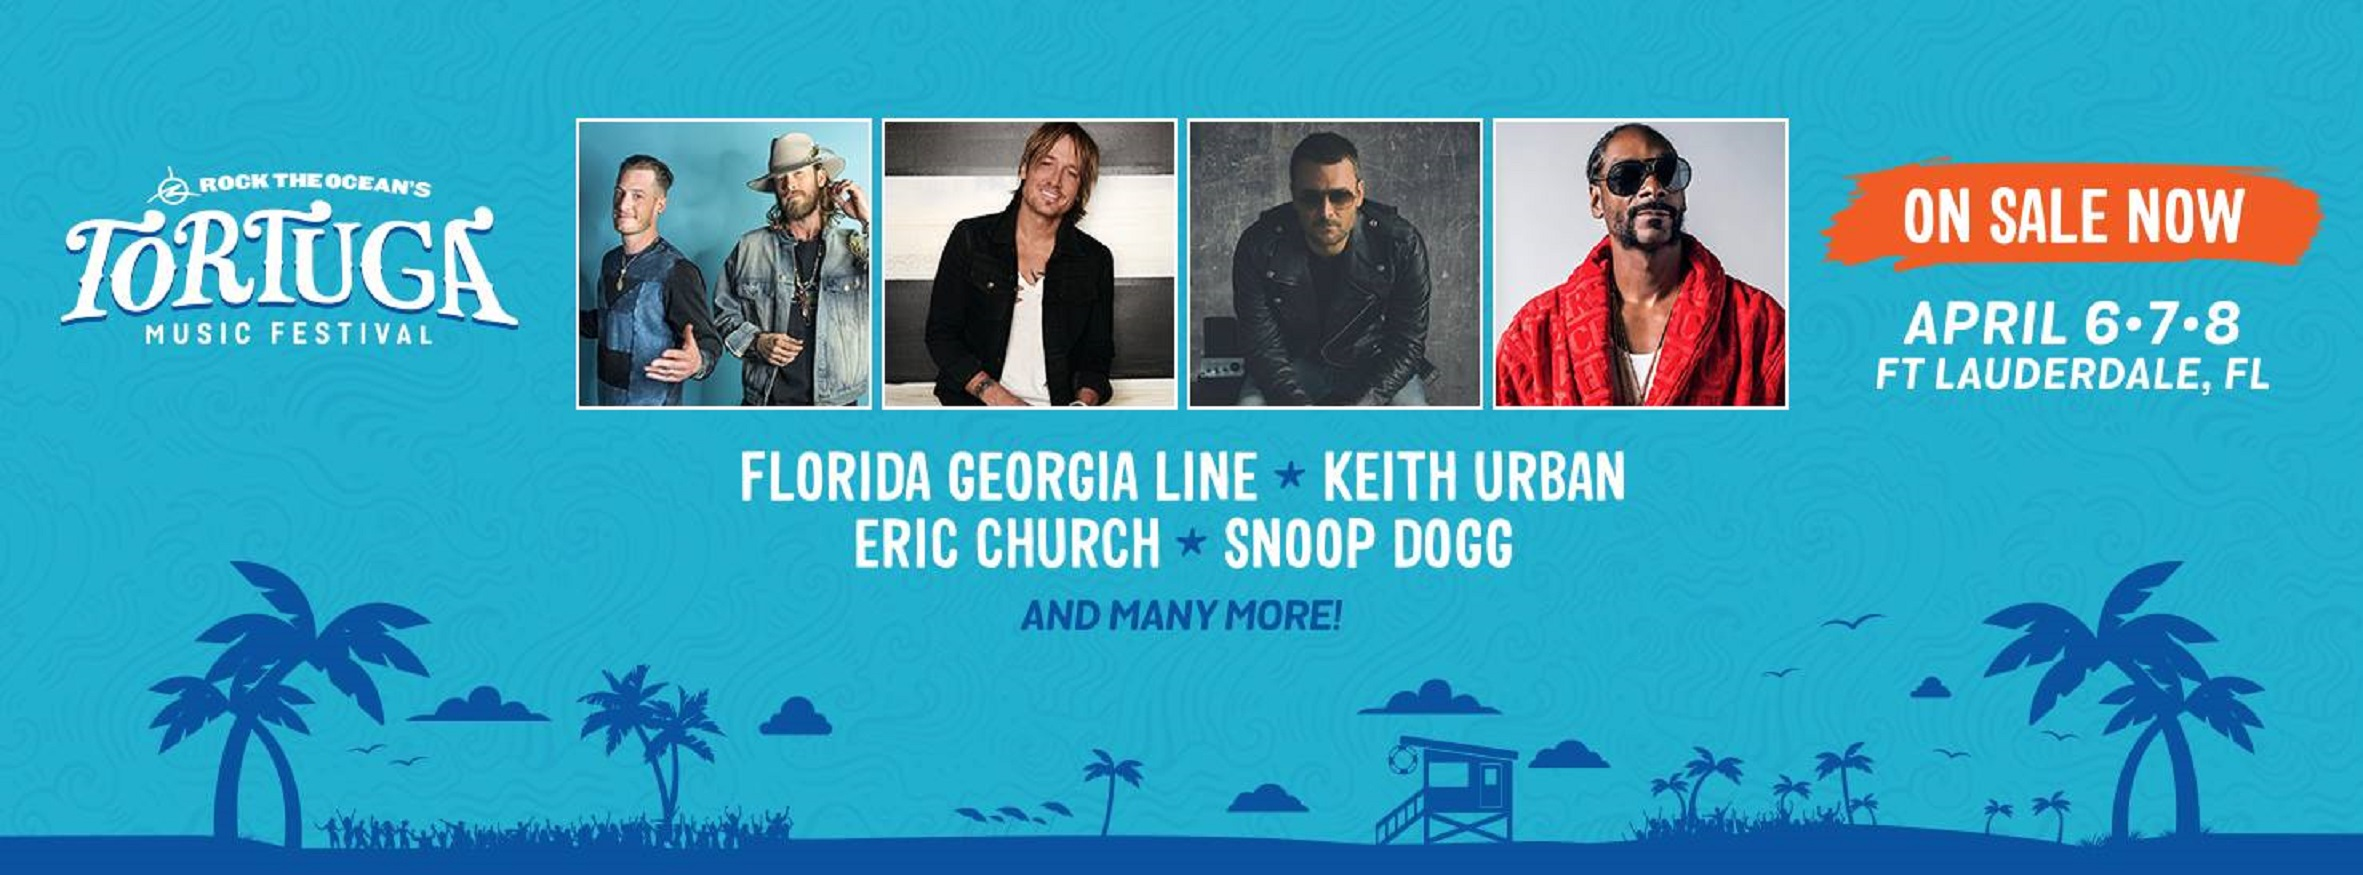 Tortuga Music Festival Early Bird Tickets Available Now